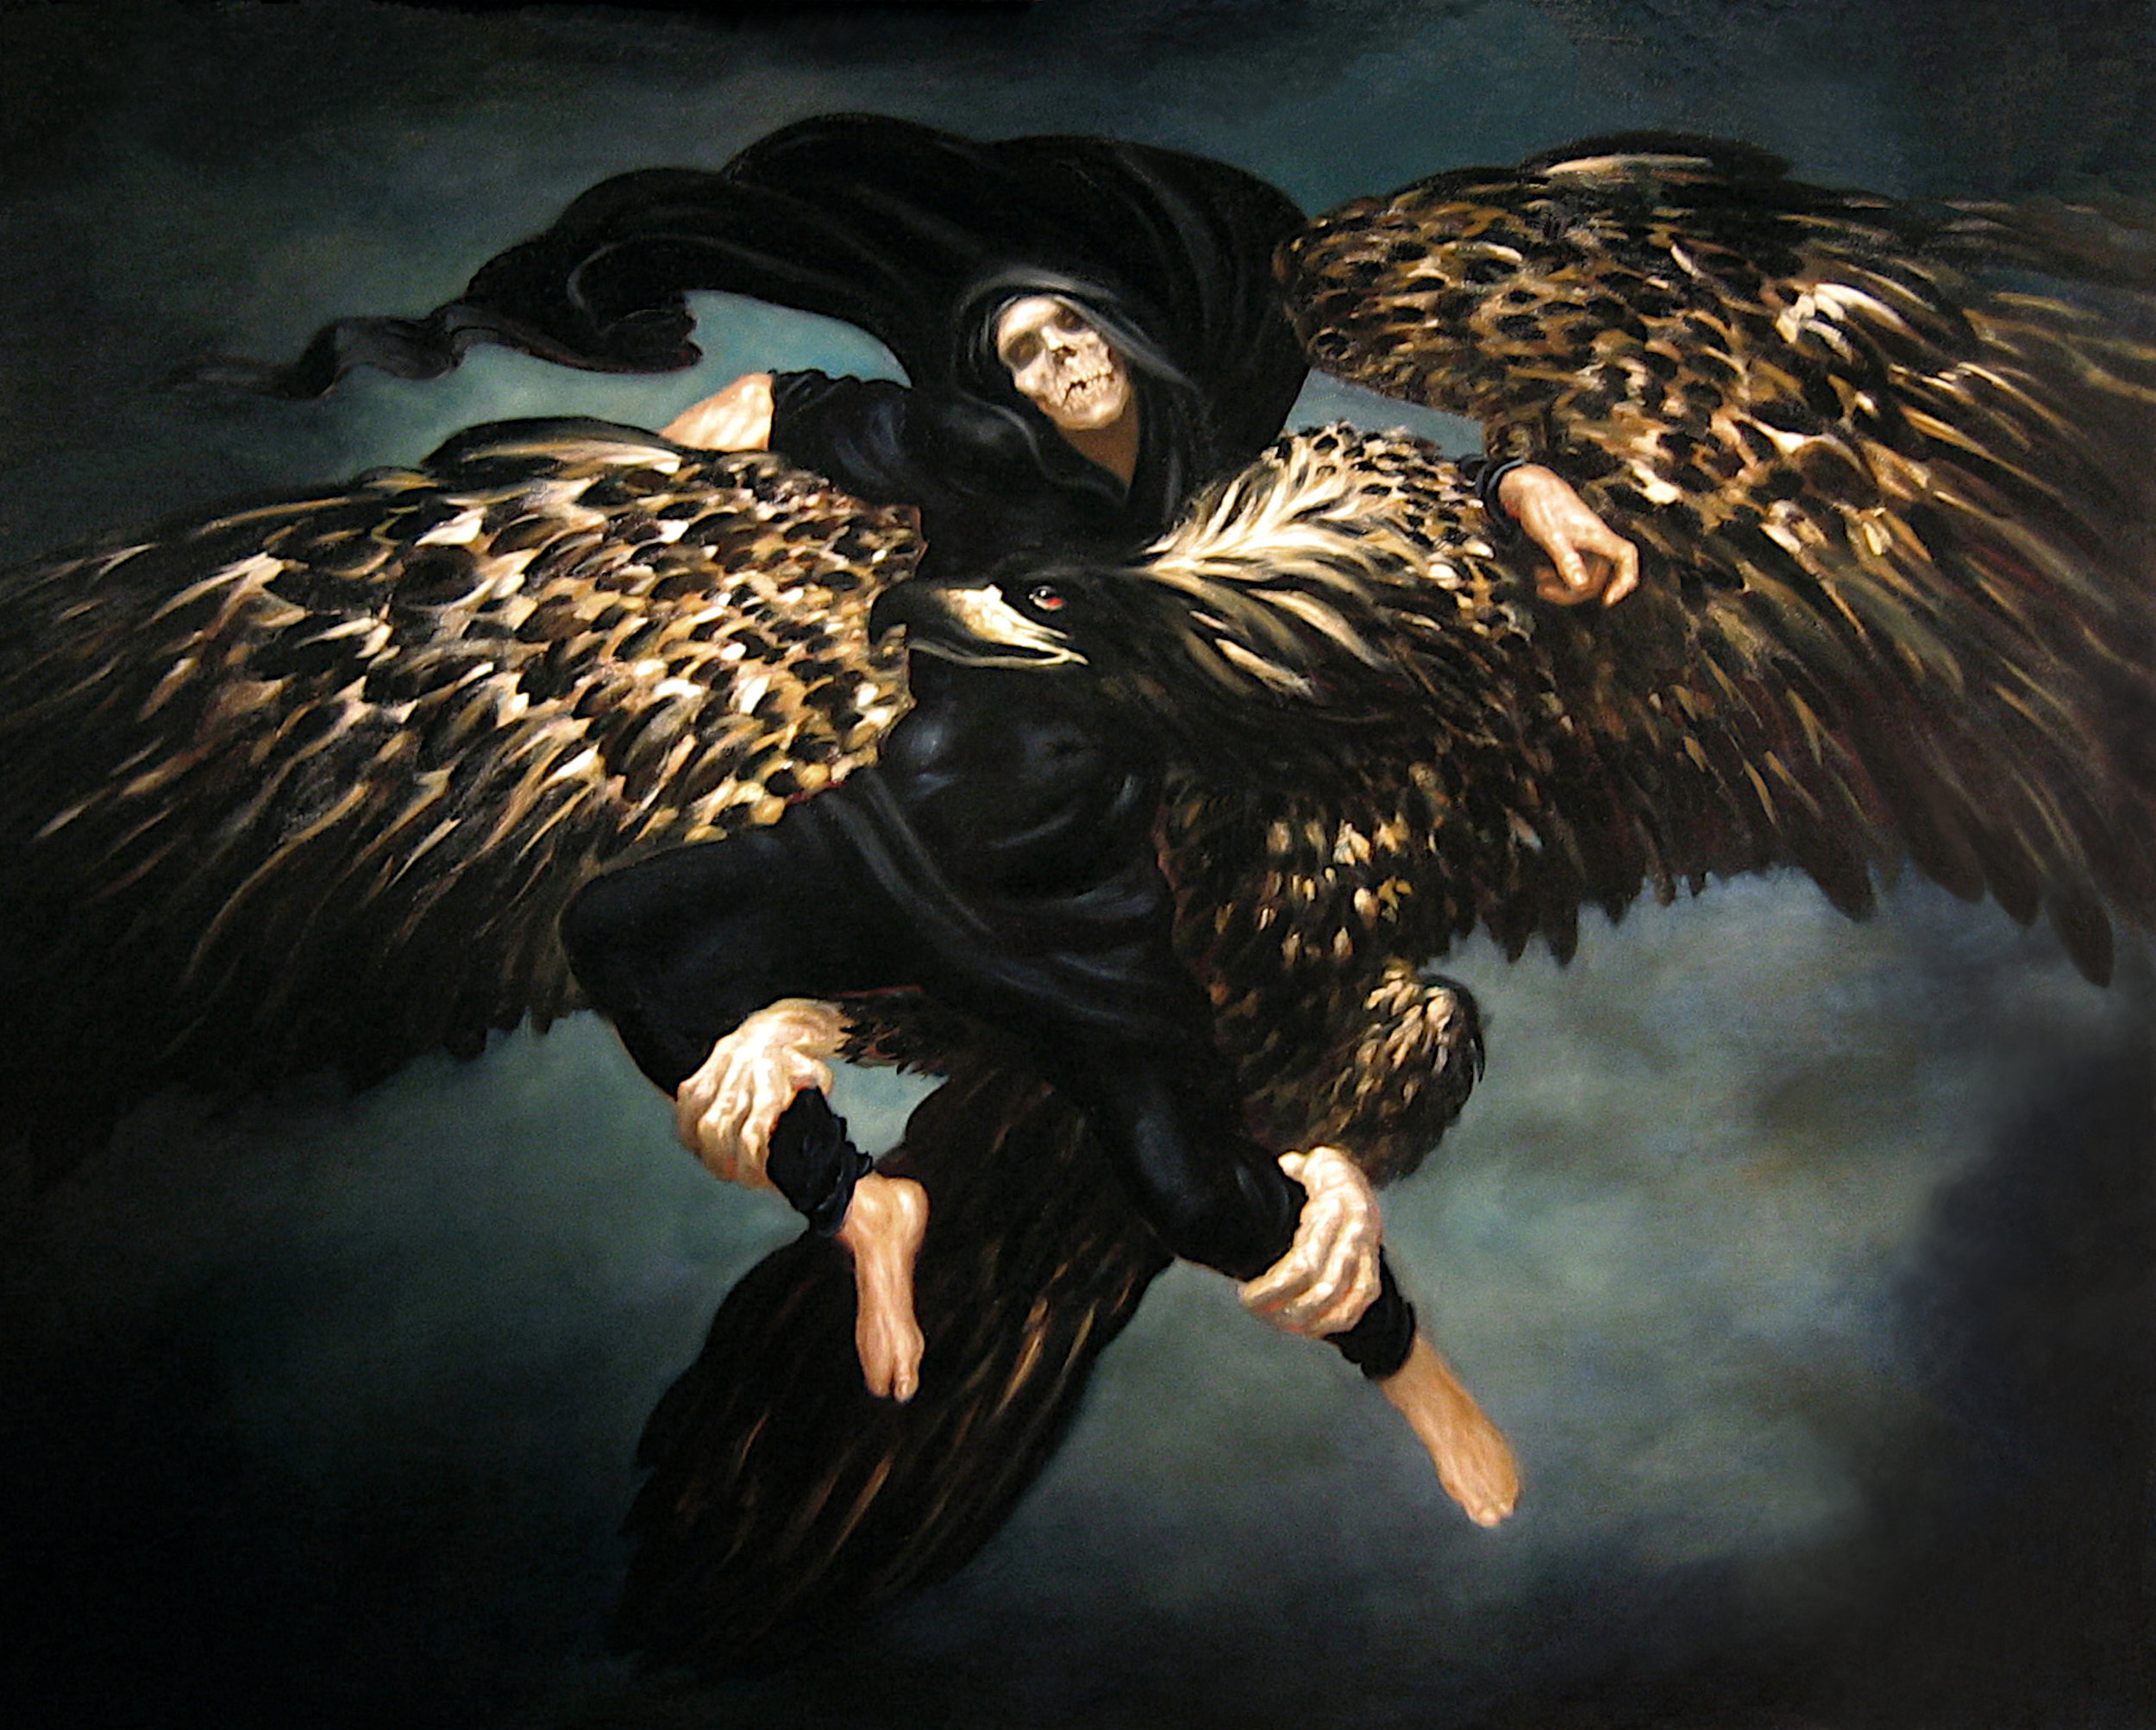 Painting (Allegory of Time) 20x30 2 - Version 2a.jpg